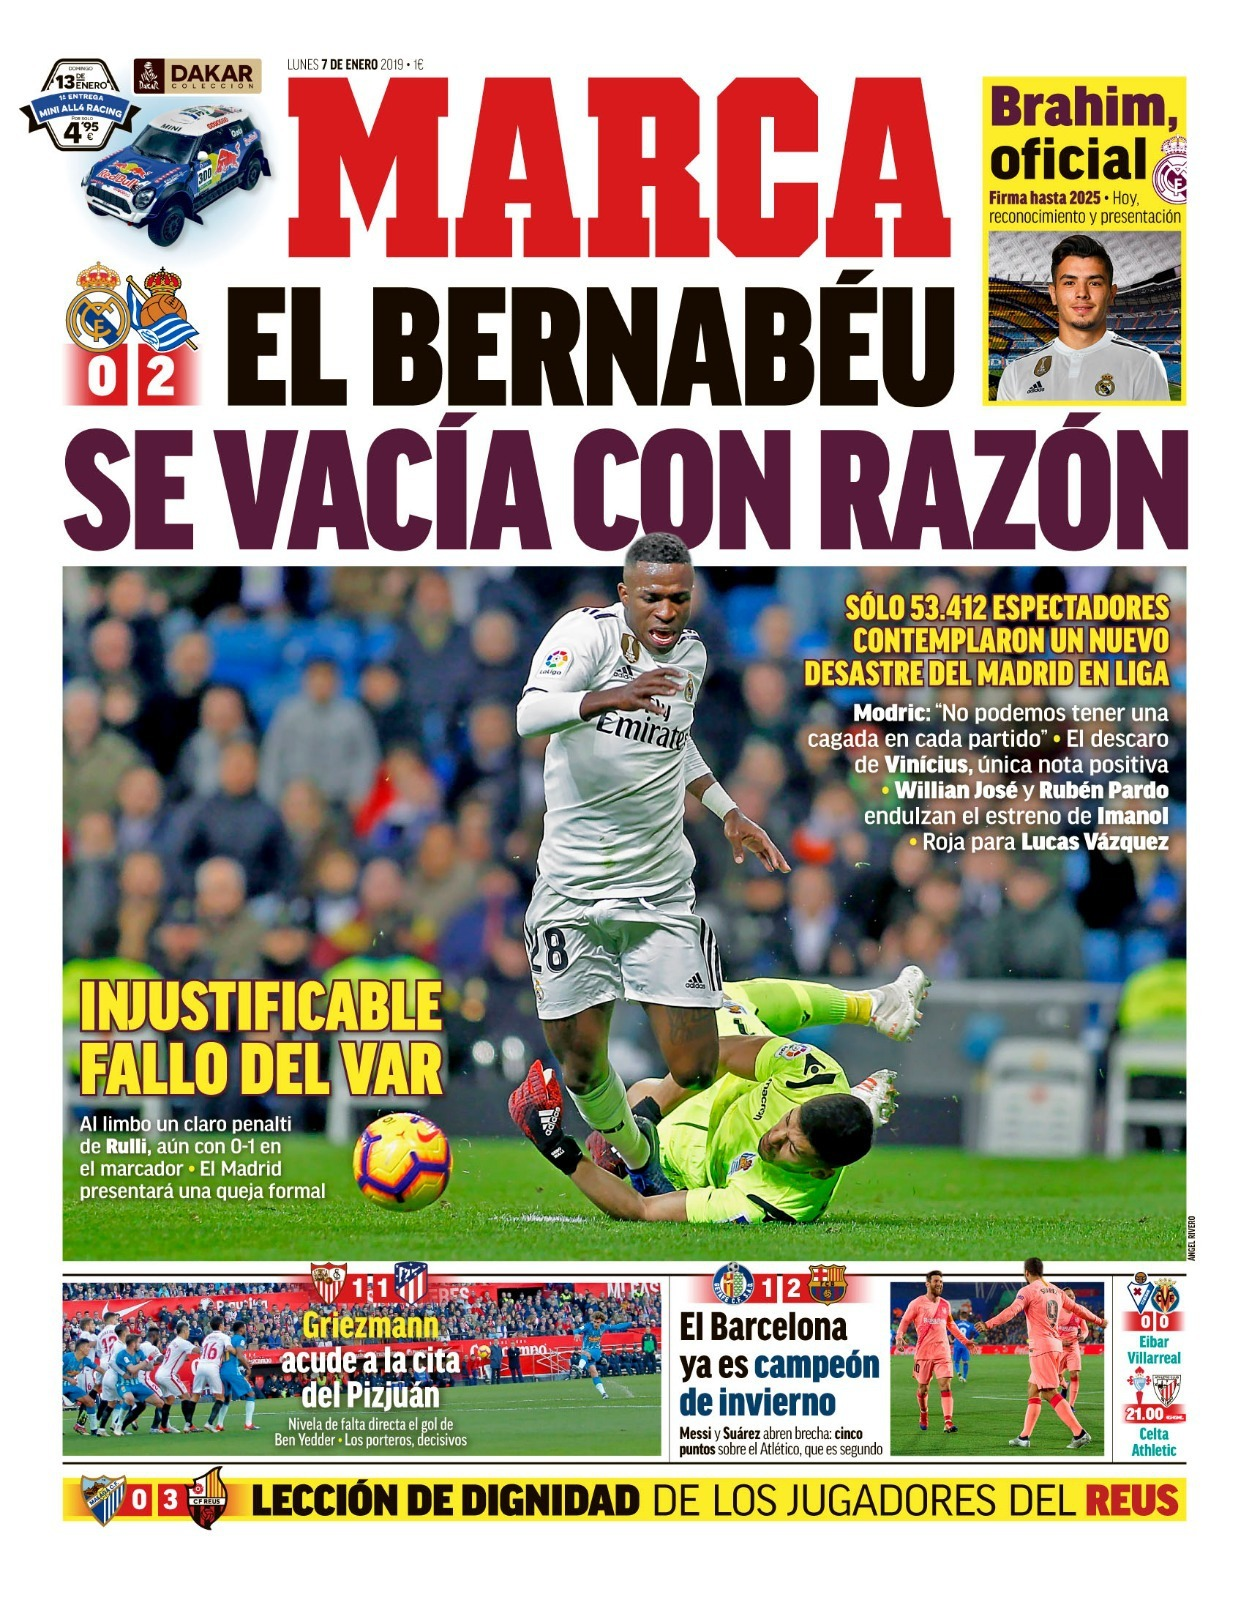 The Bernabeu emptied with good reason